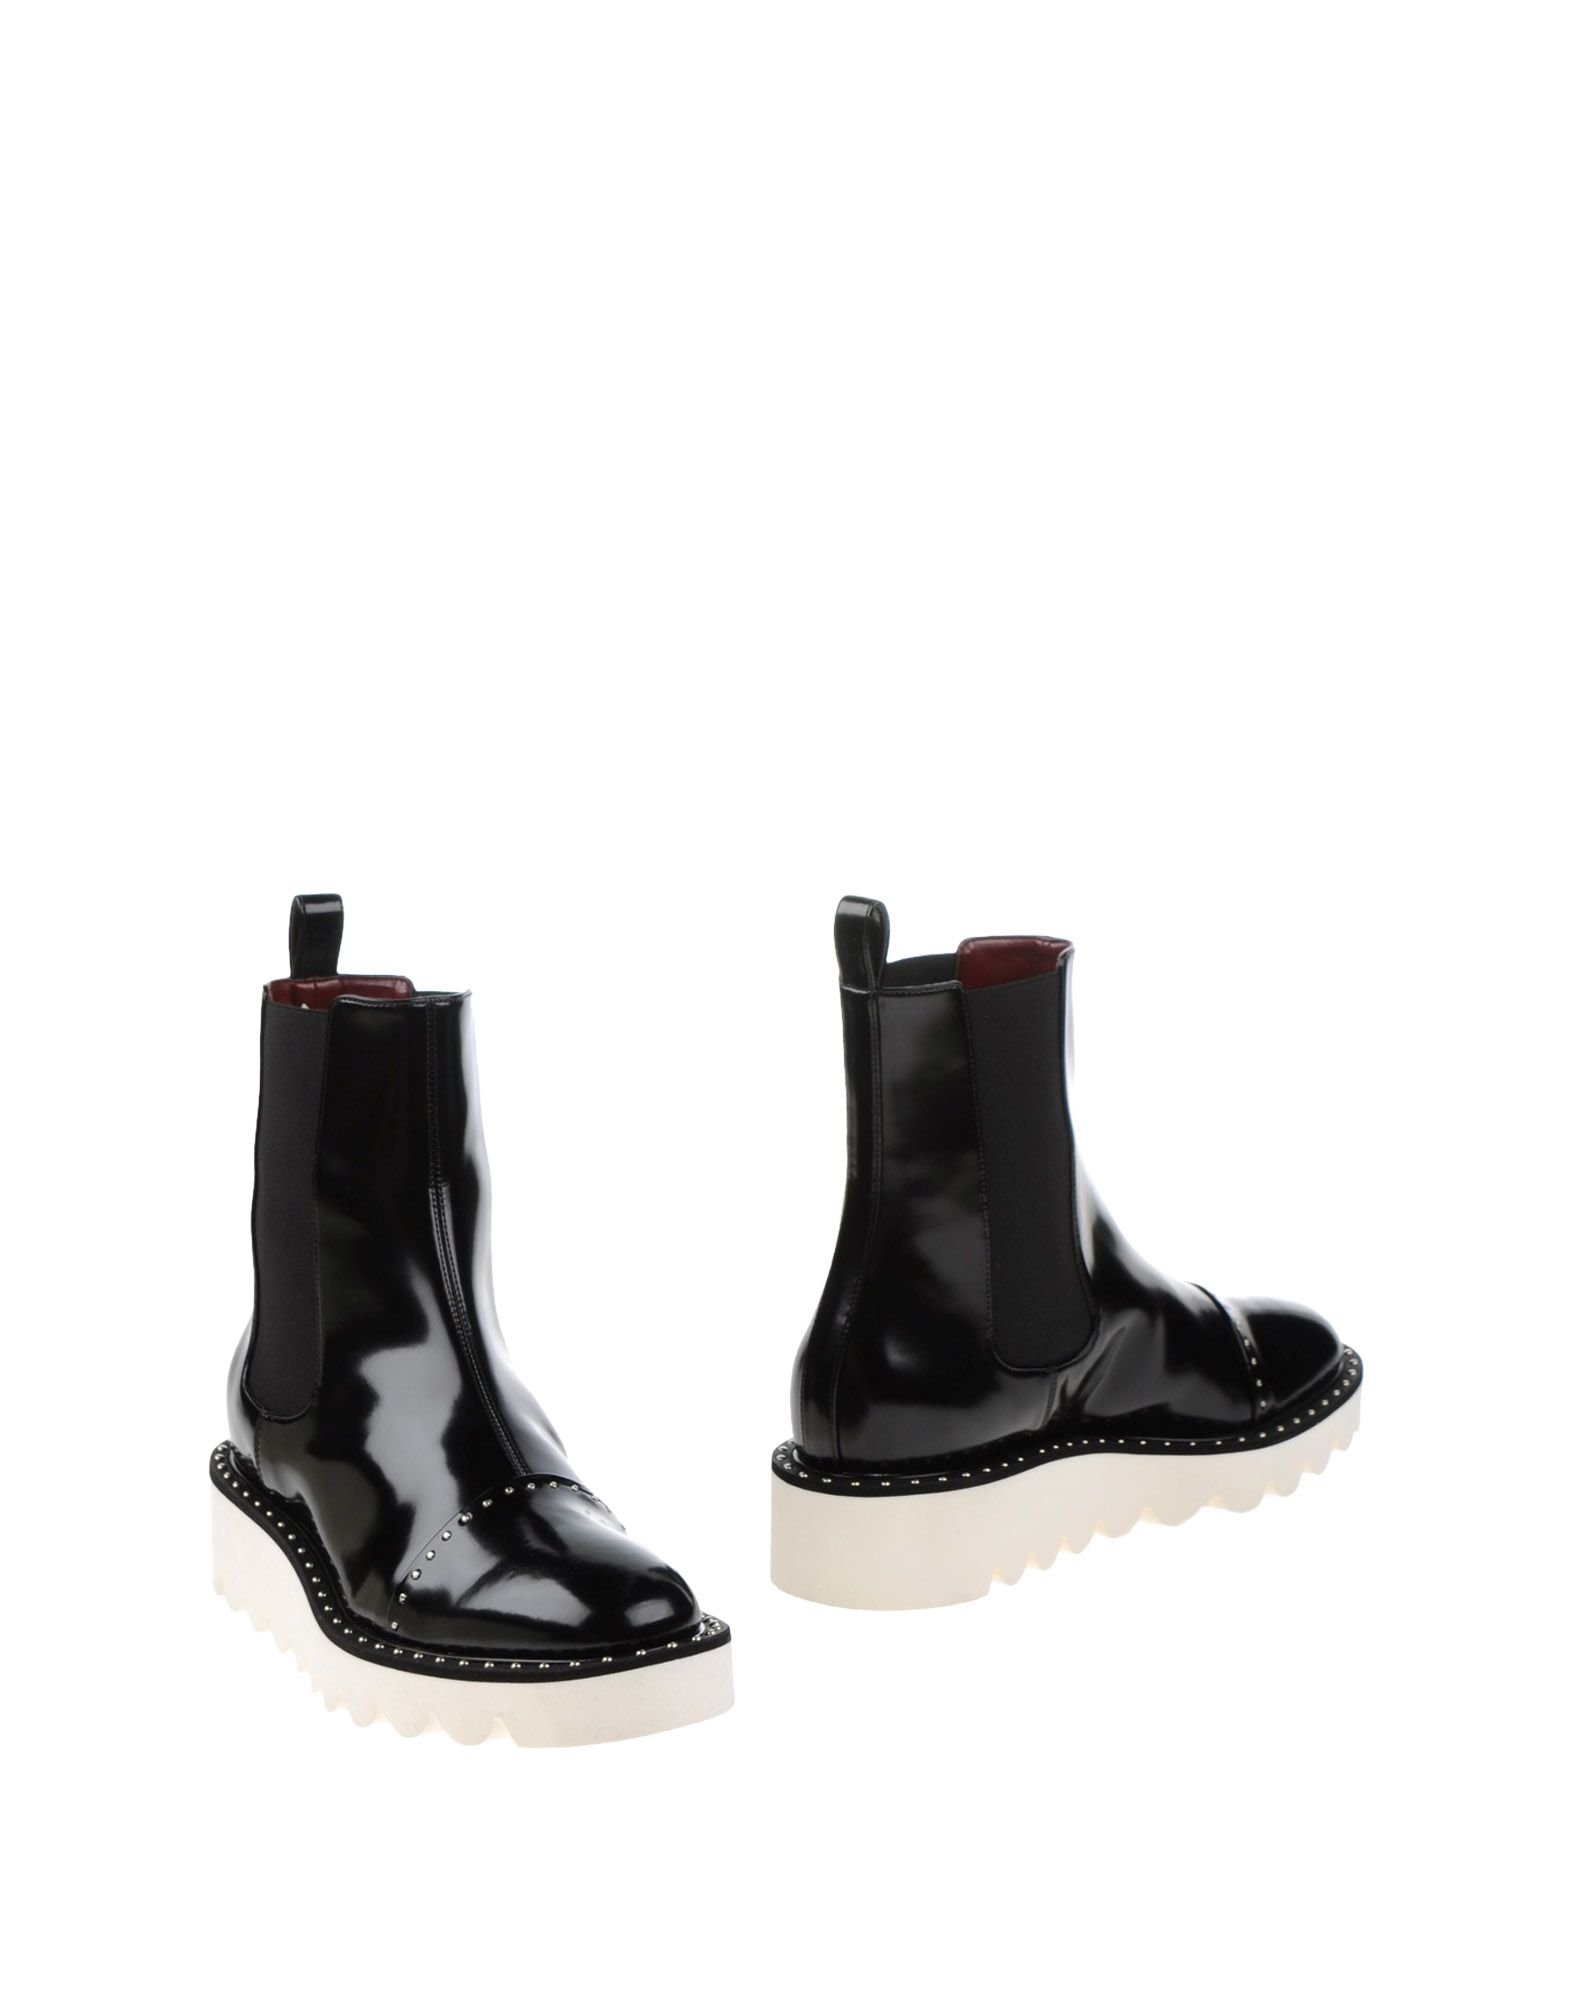 Stella Mccartney Ankle Mccartney Boot - Women Stella Mccartney Ankle Ankle Boots online on  United Kingdom - 11214710KA 912d28